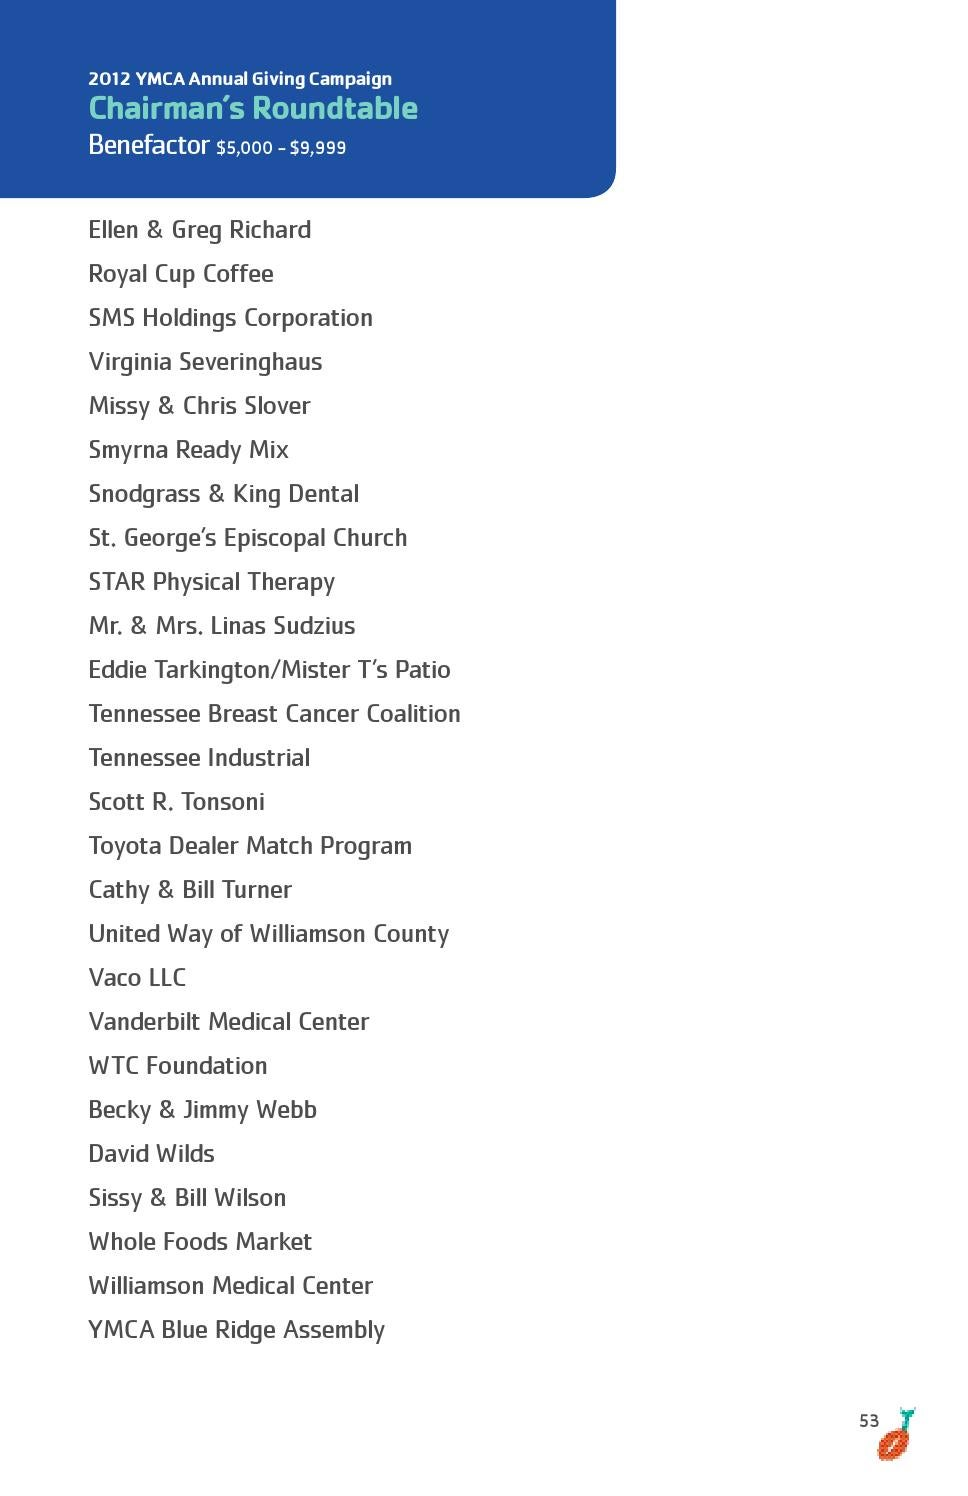 2012 YMCA OF MIDDLE TENNESSEE ANNUAL REPORT By YMCA Of Middle Tennessee    Issuu